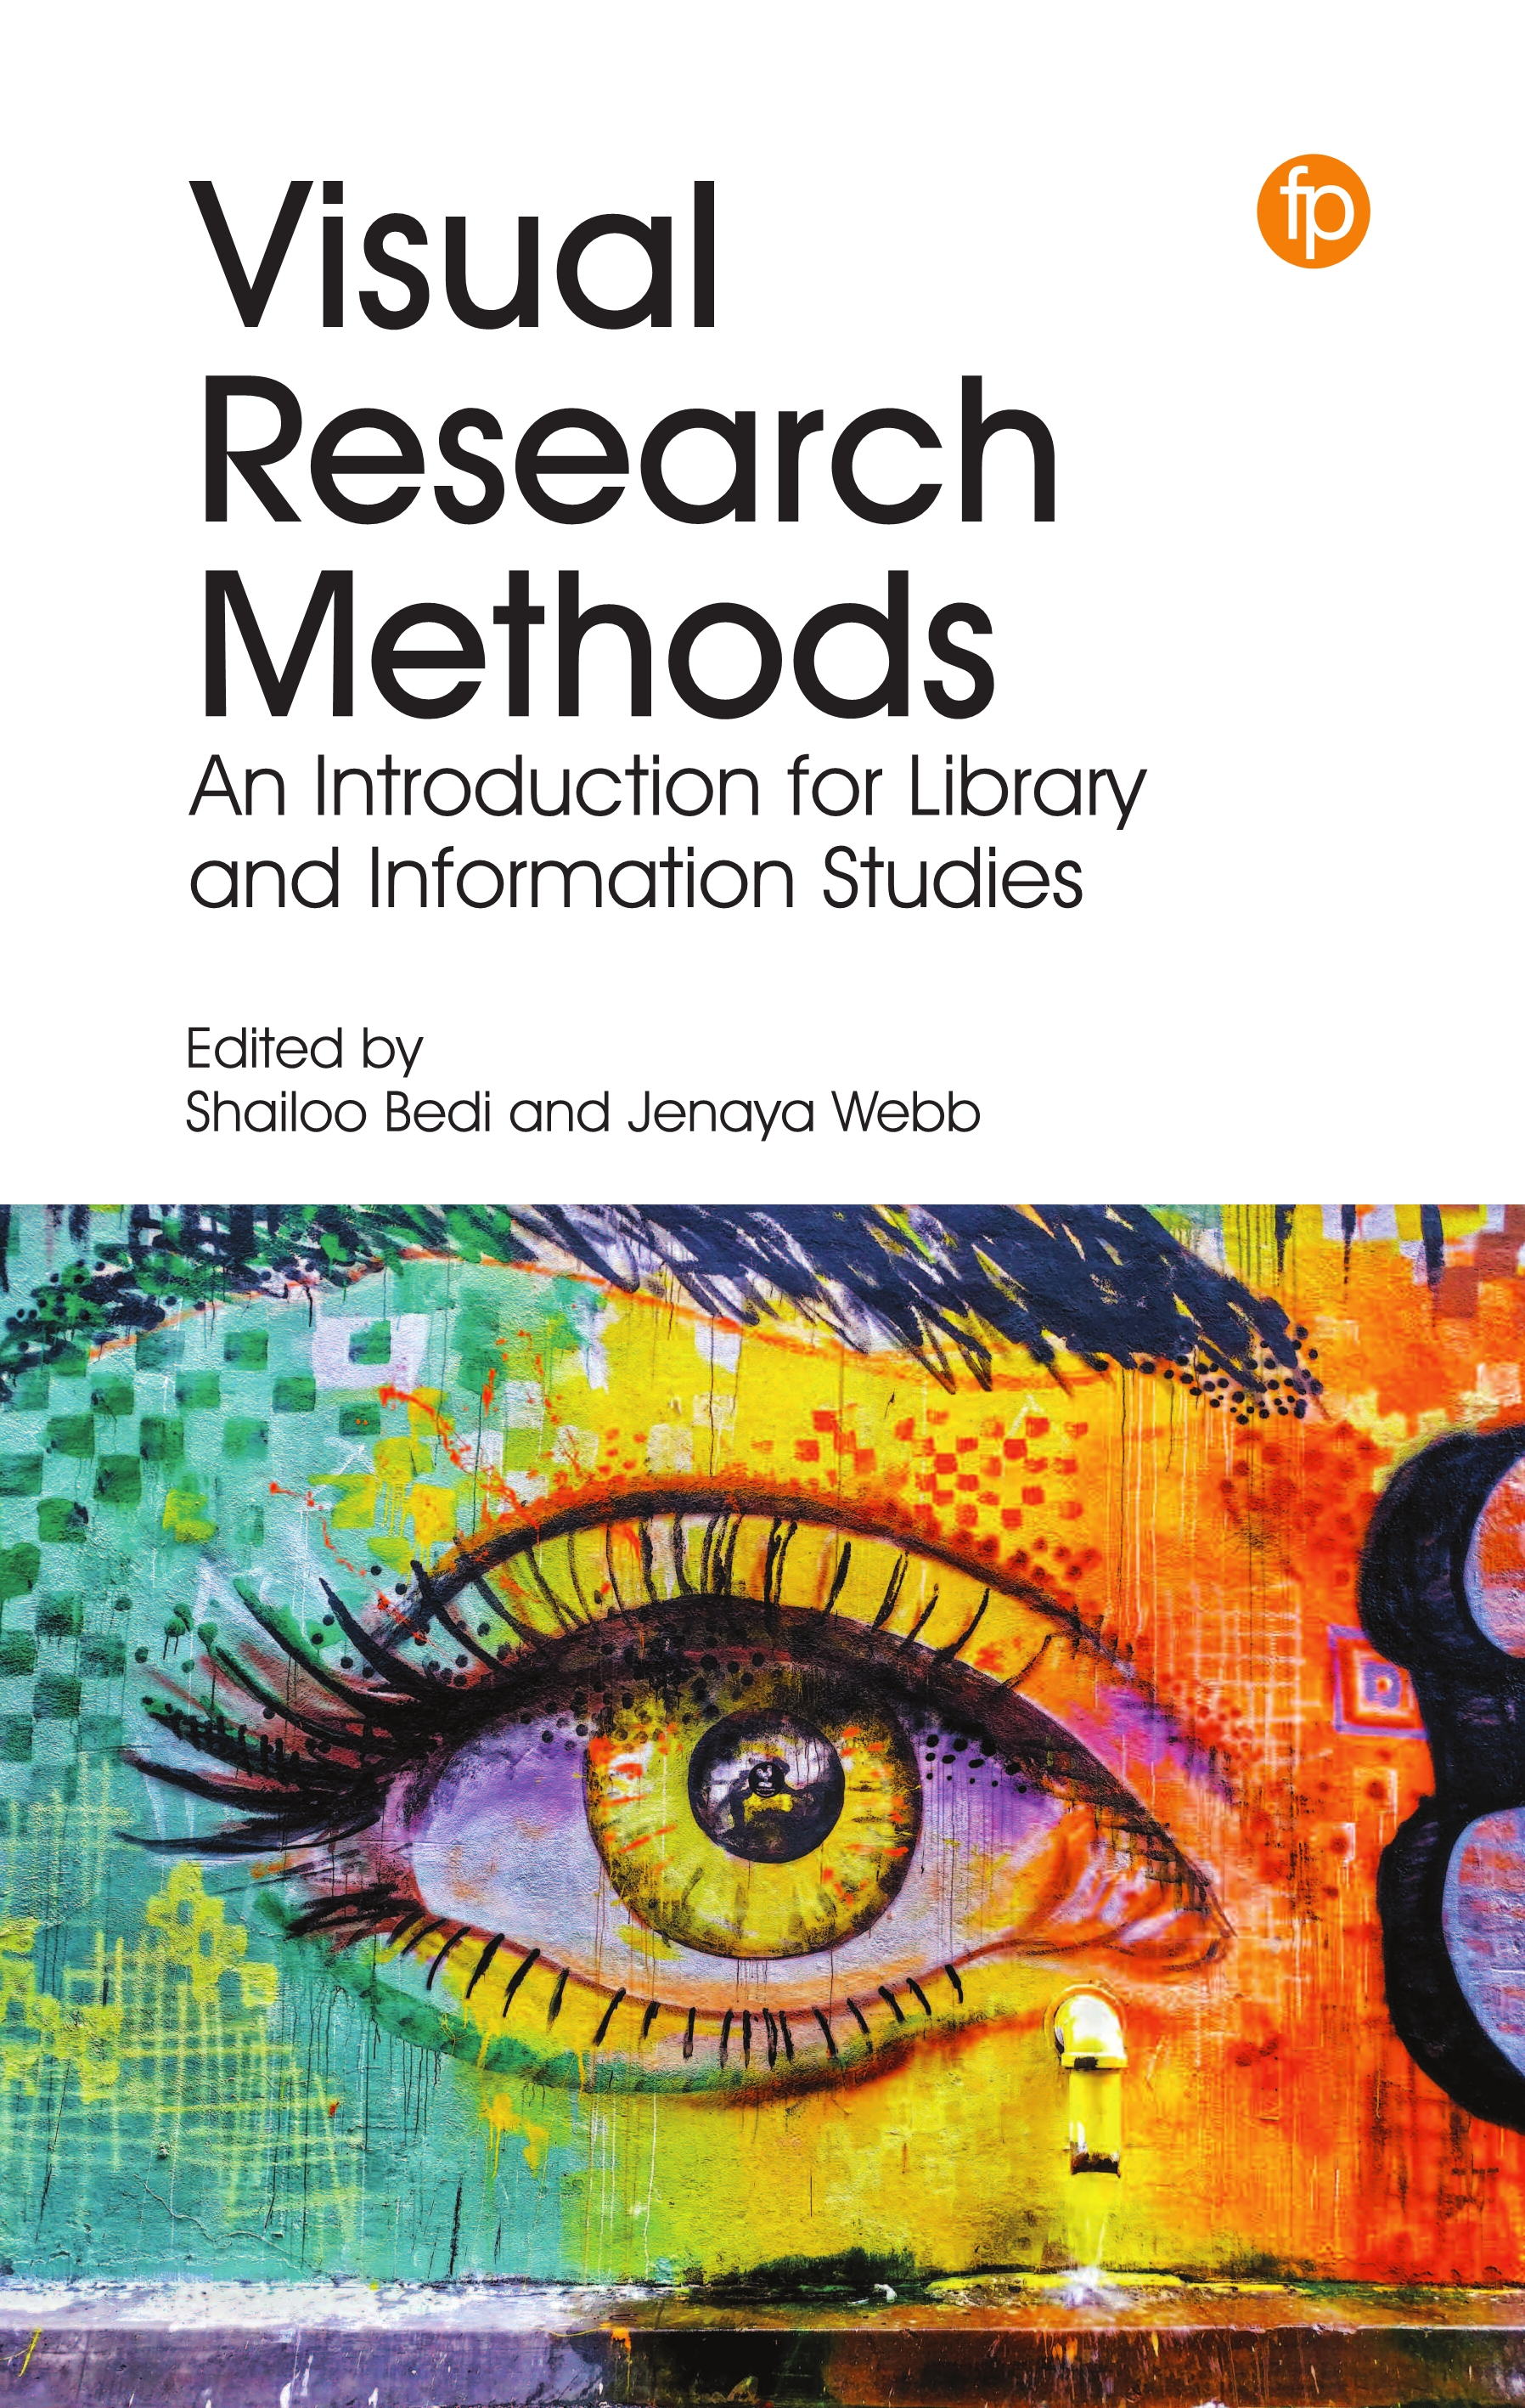 Visual Research Methods: An Introduction for Library and Information Studies